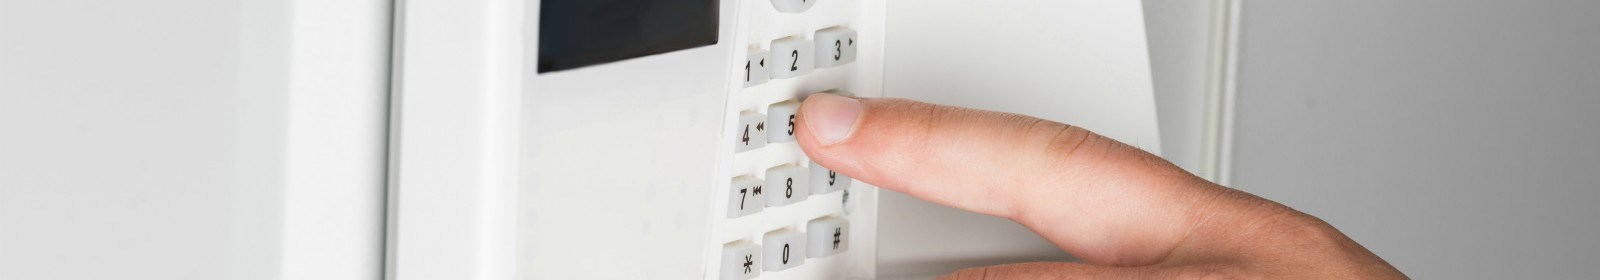 Locking Up For The Holidays: Your Home Security Guide